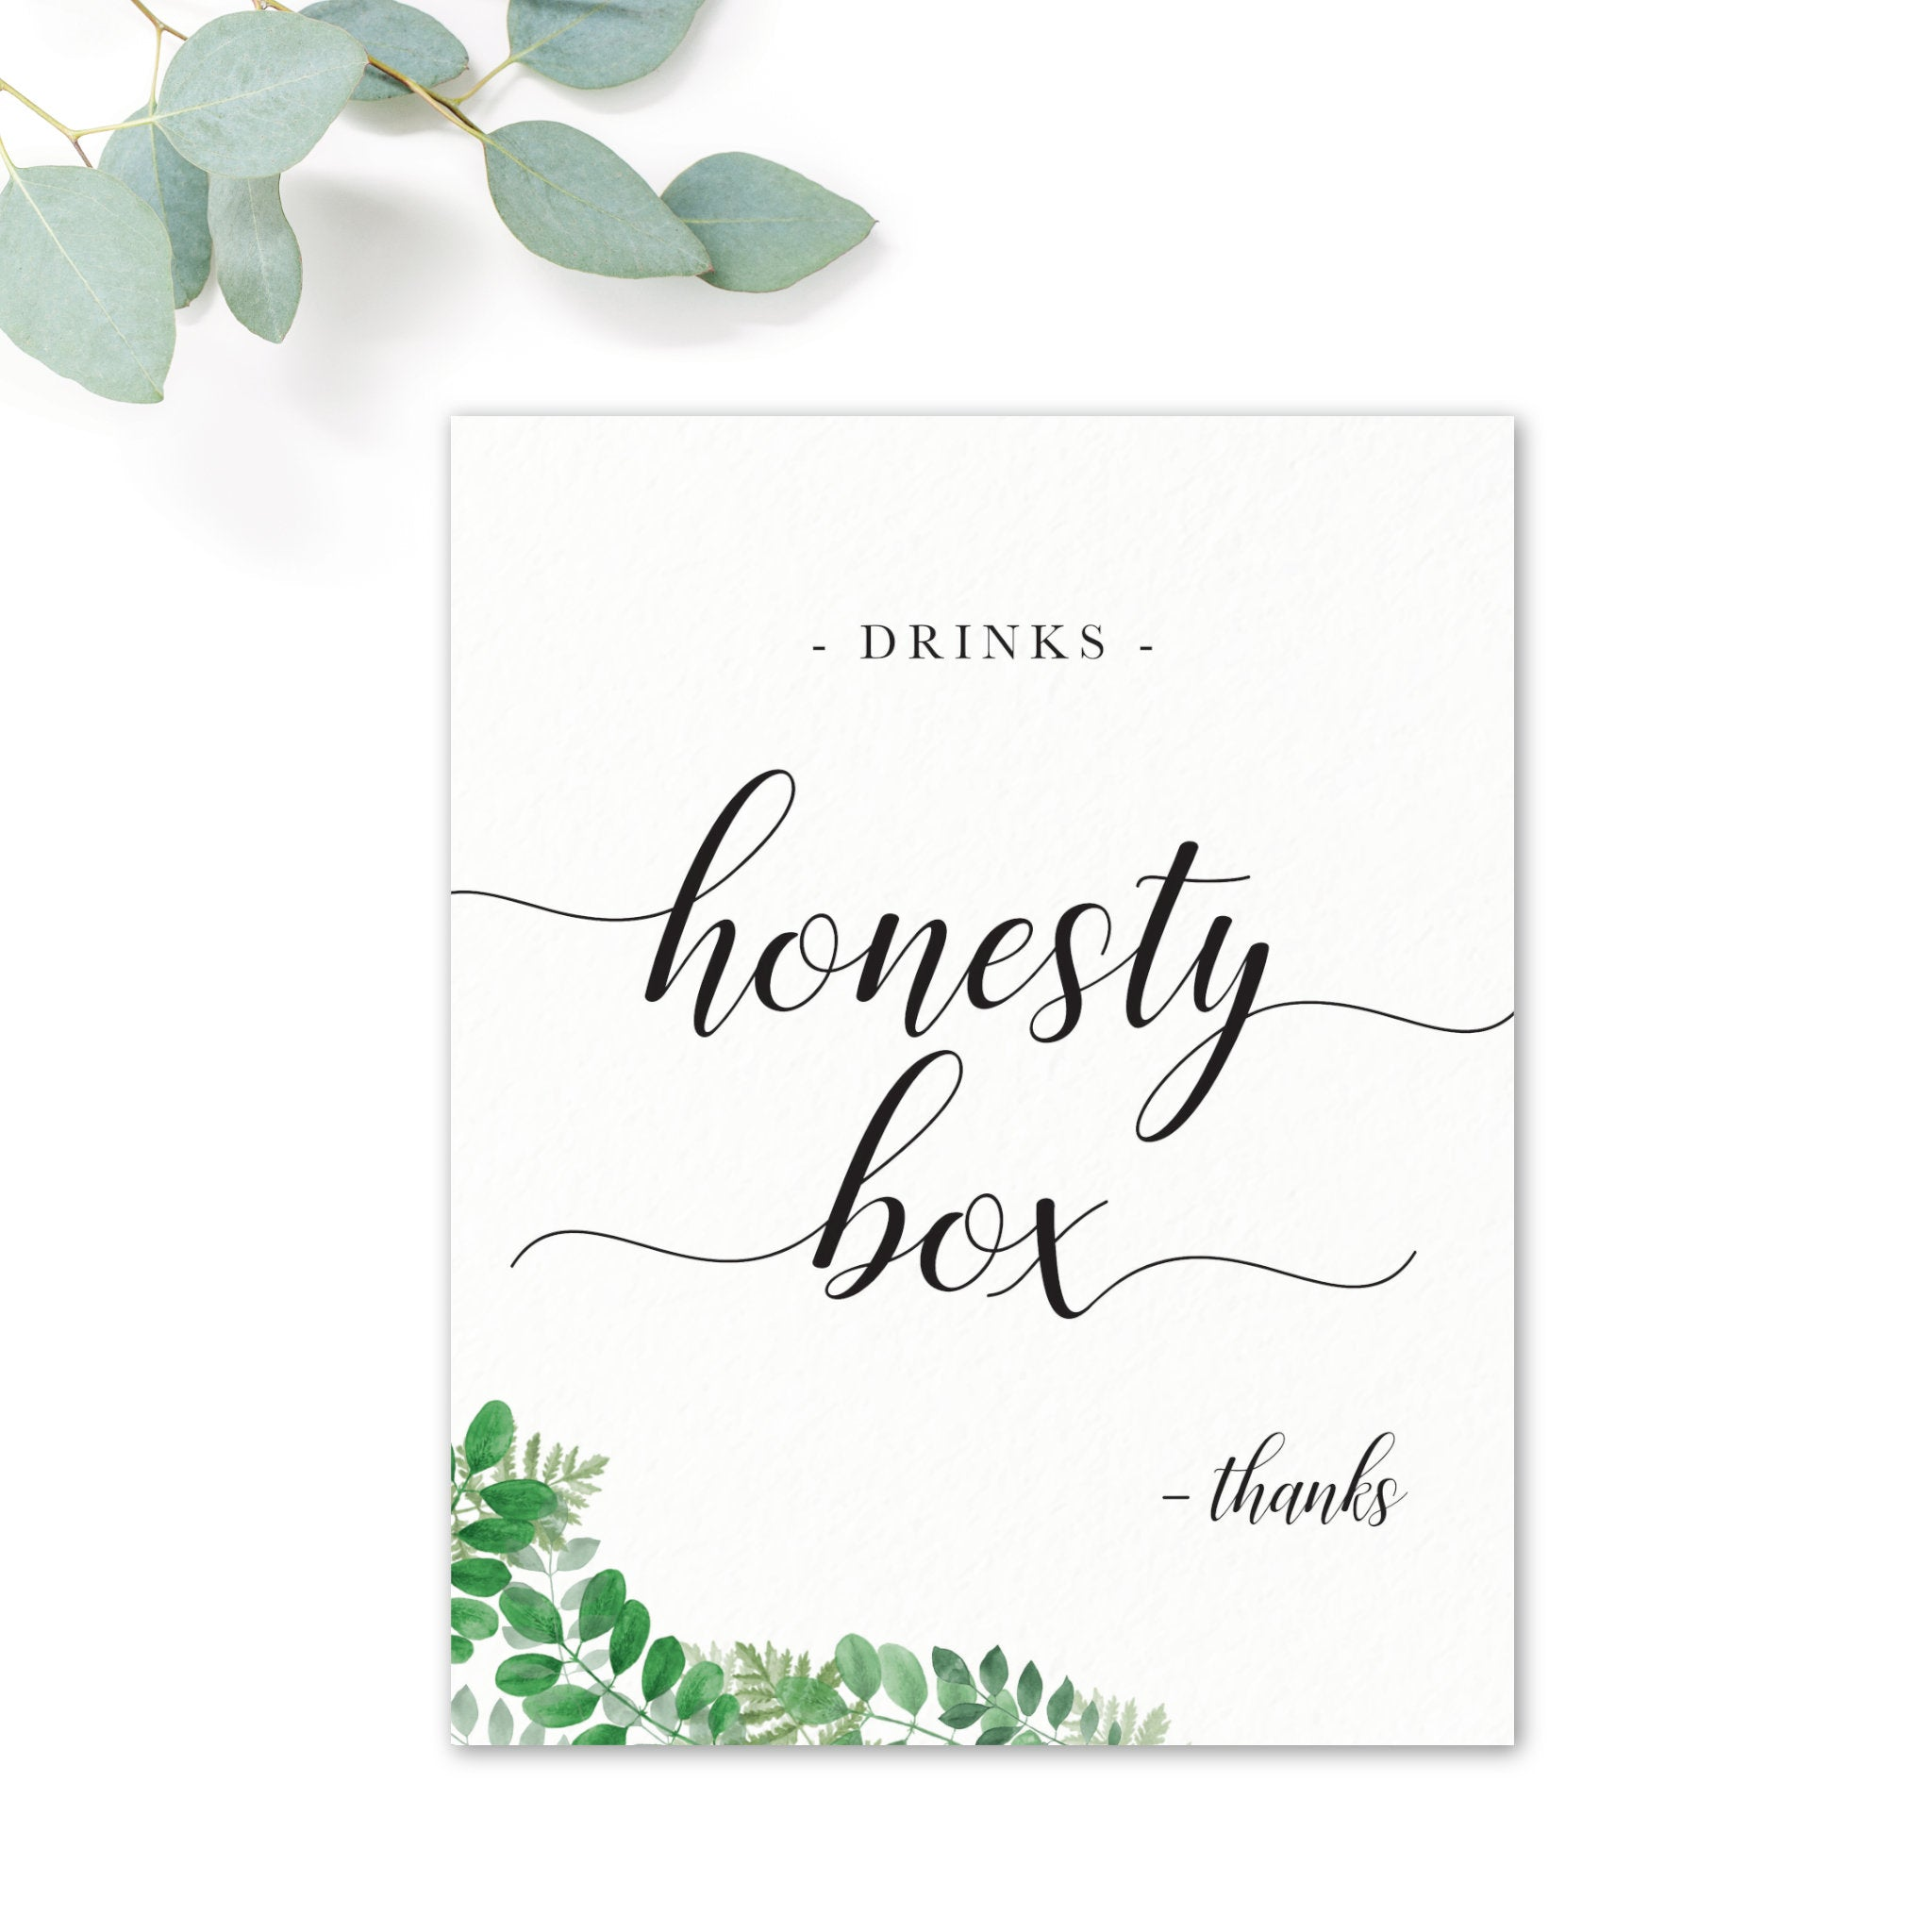 Richmond Wedding Drinks Honesty Box Sign / Print